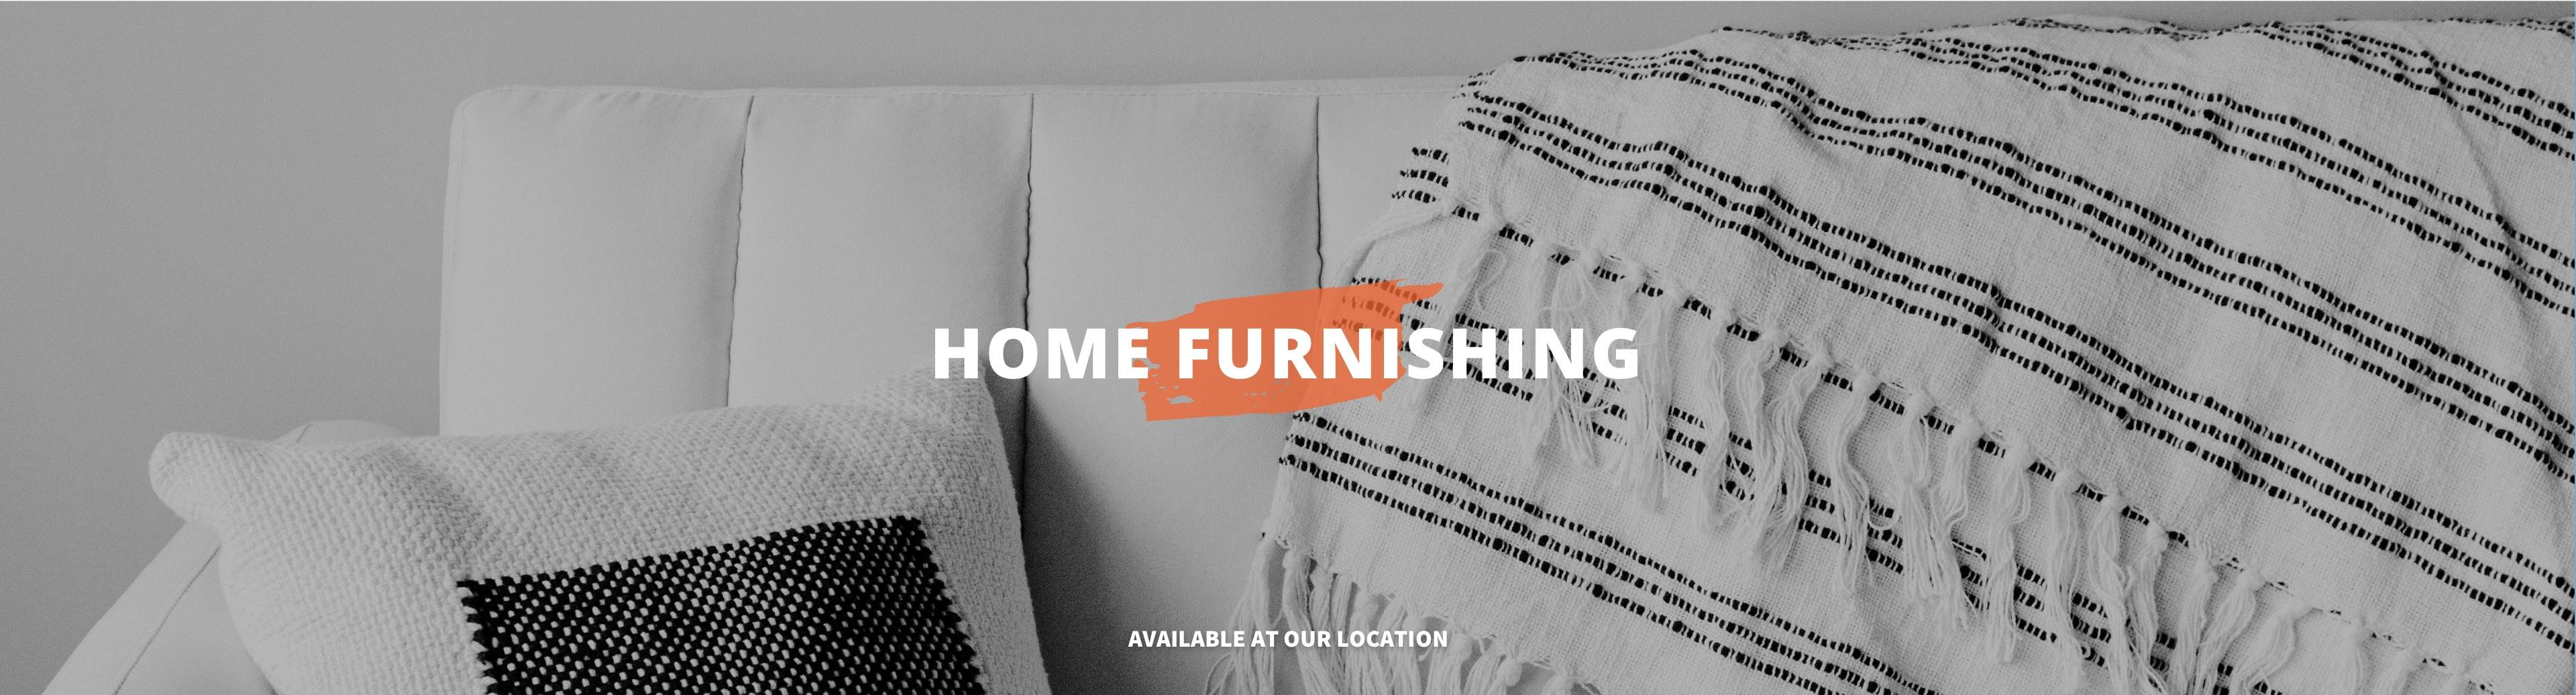 Home Furnishing title with a white couch, pillow, and throw blanket - Available at Our Location